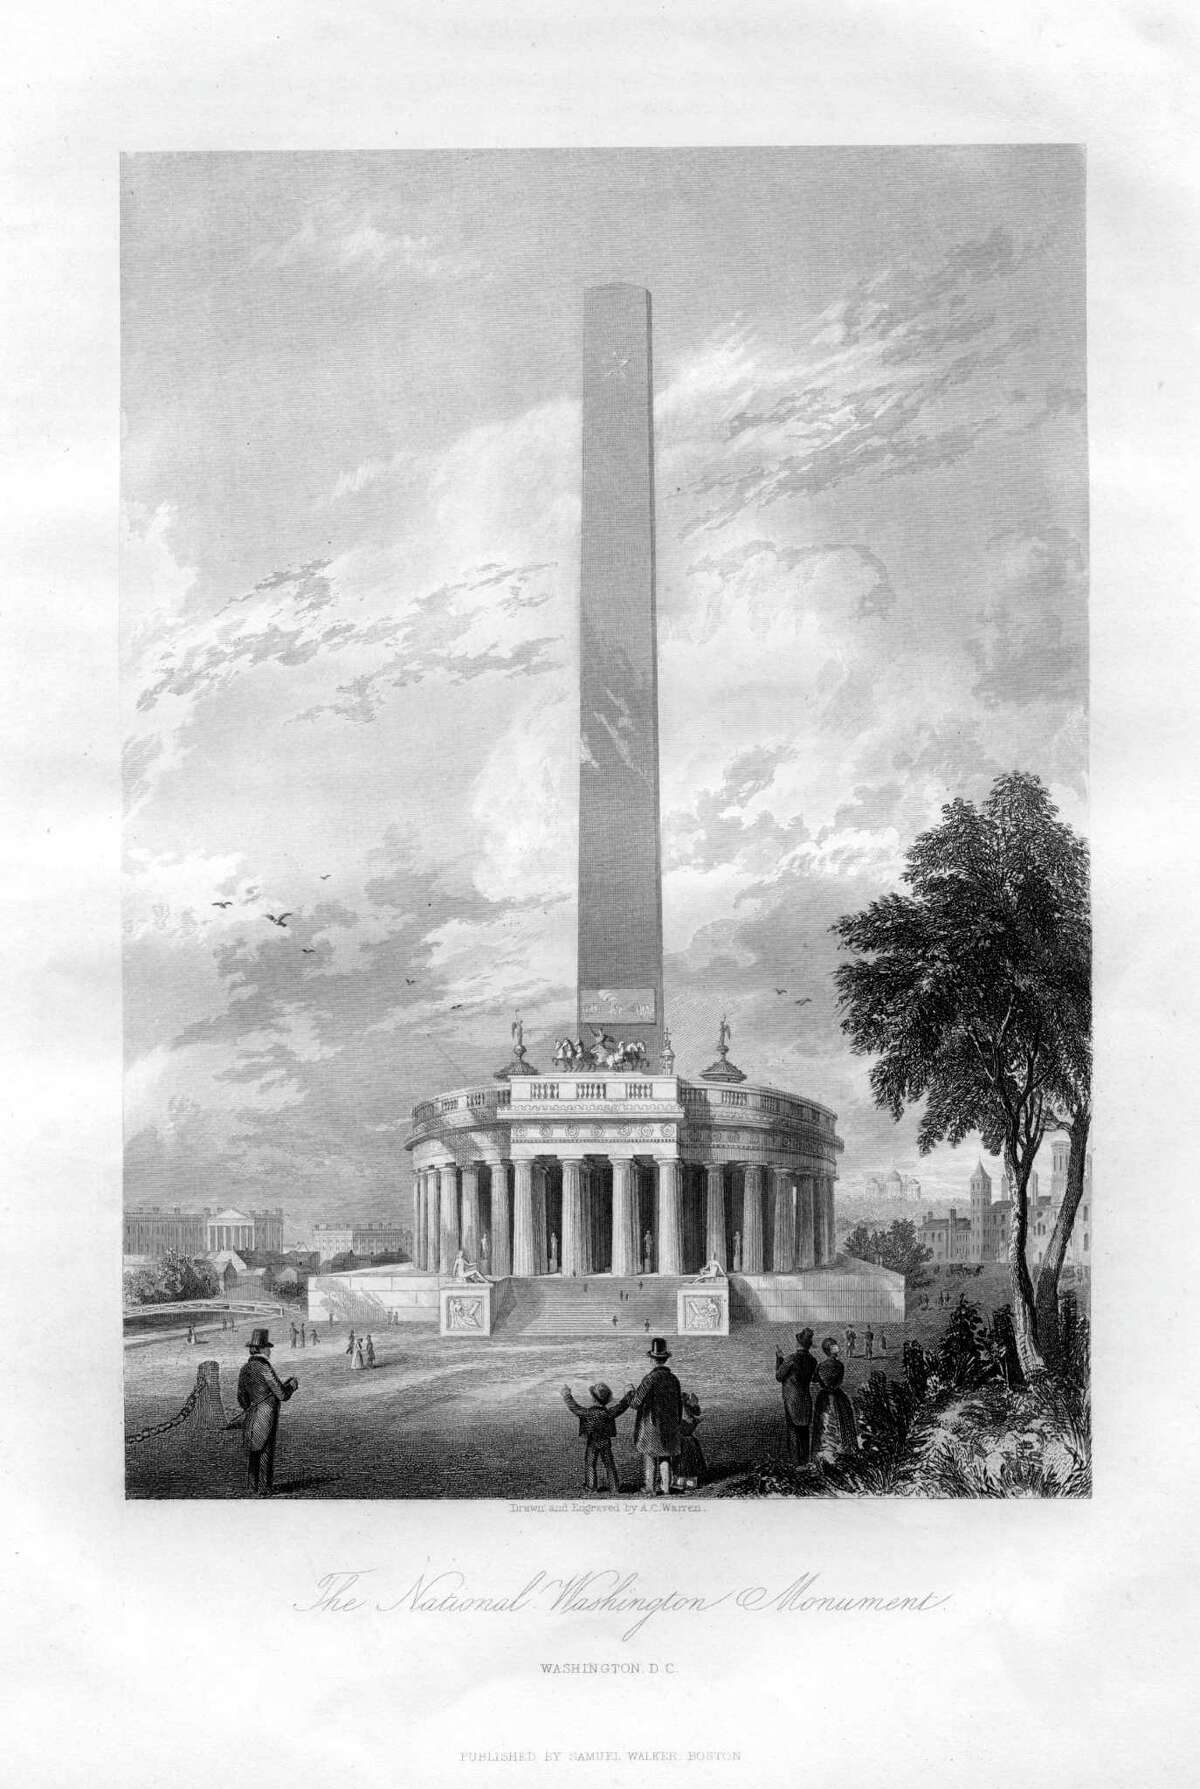 A print from the History and Topography of the United States of North America, by John Howard Hinton, Volume 2, Samuel Walker, Boston, 1855, of the National Washington Monument shows the original plans for the monument, on which construction began in 1848. The colonnade at the monument's base, which was intended to house statues of thirty heroes of the War of Independence in the original design, was never built.